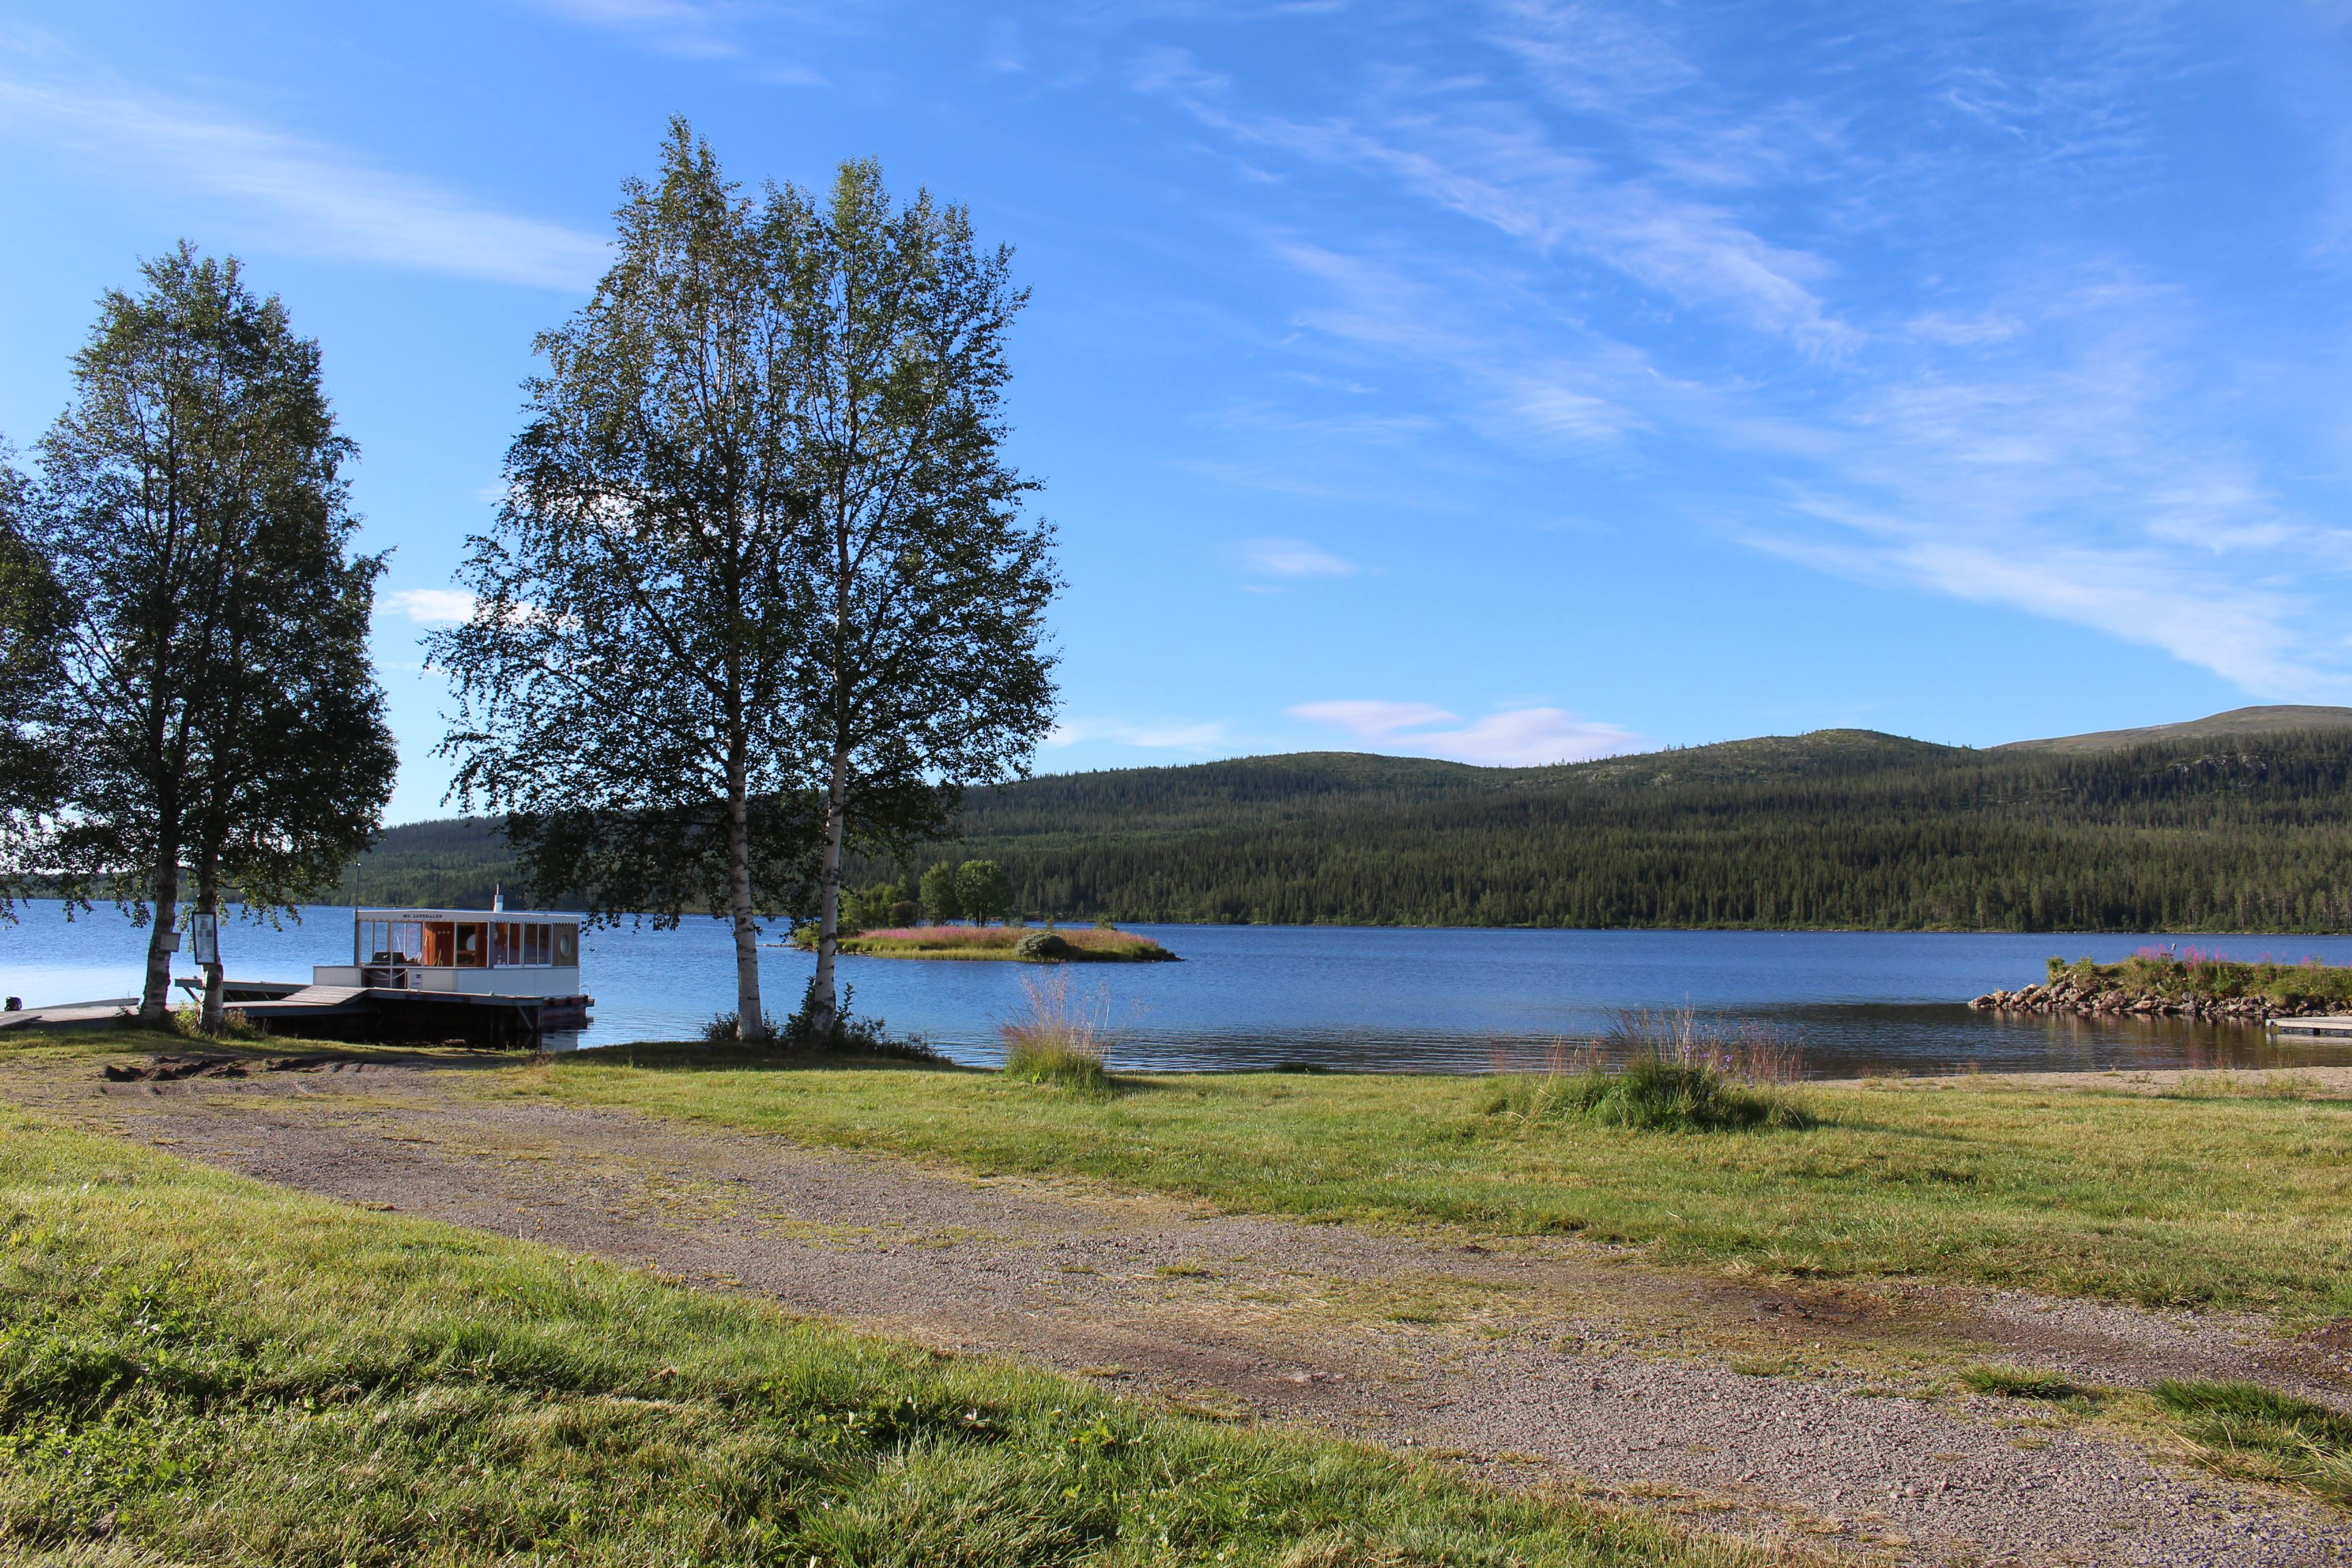 Boattrip with sauna, food and drinks